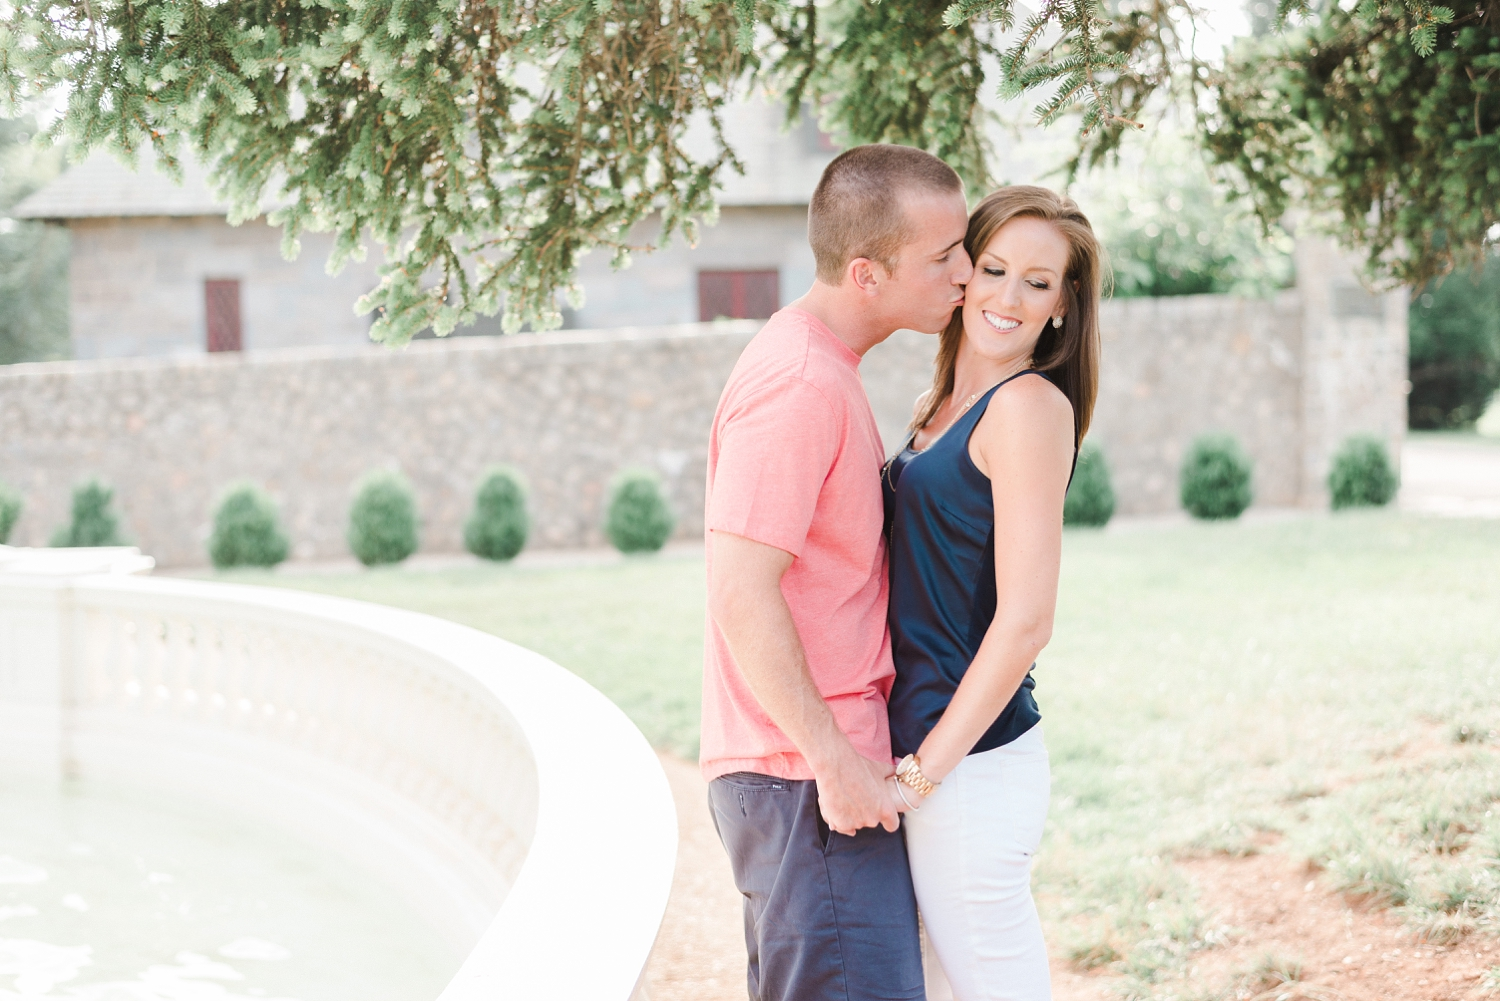 Maymon_Park_richmond_engagement_photography_0002.jpg